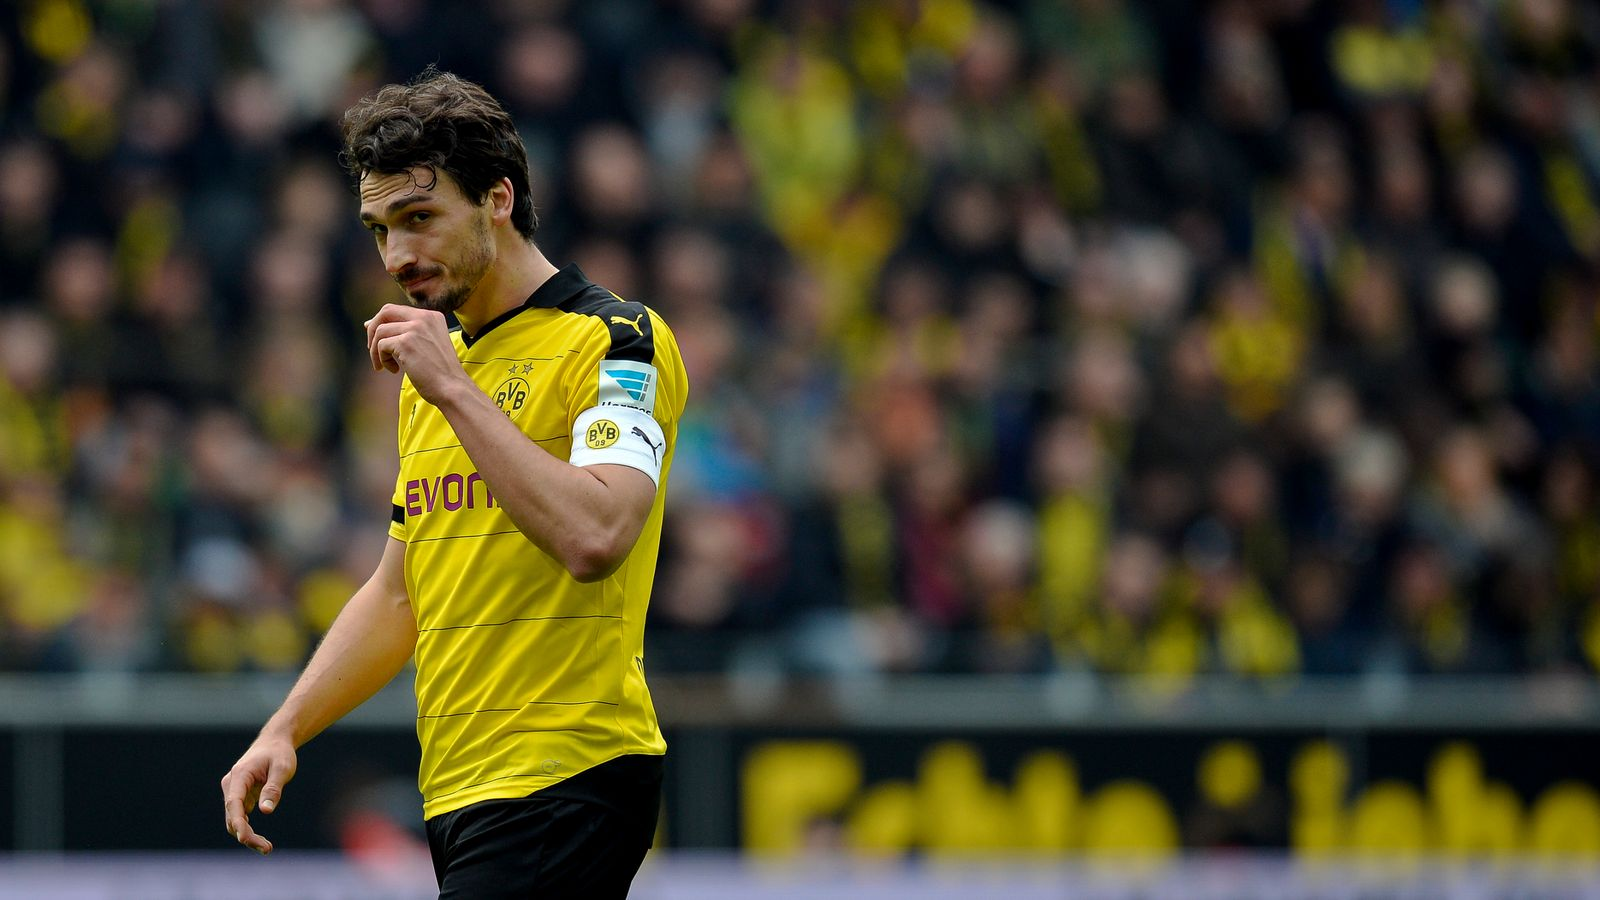 Mats hummels transfer betting odds enable friendly fire csgo betting